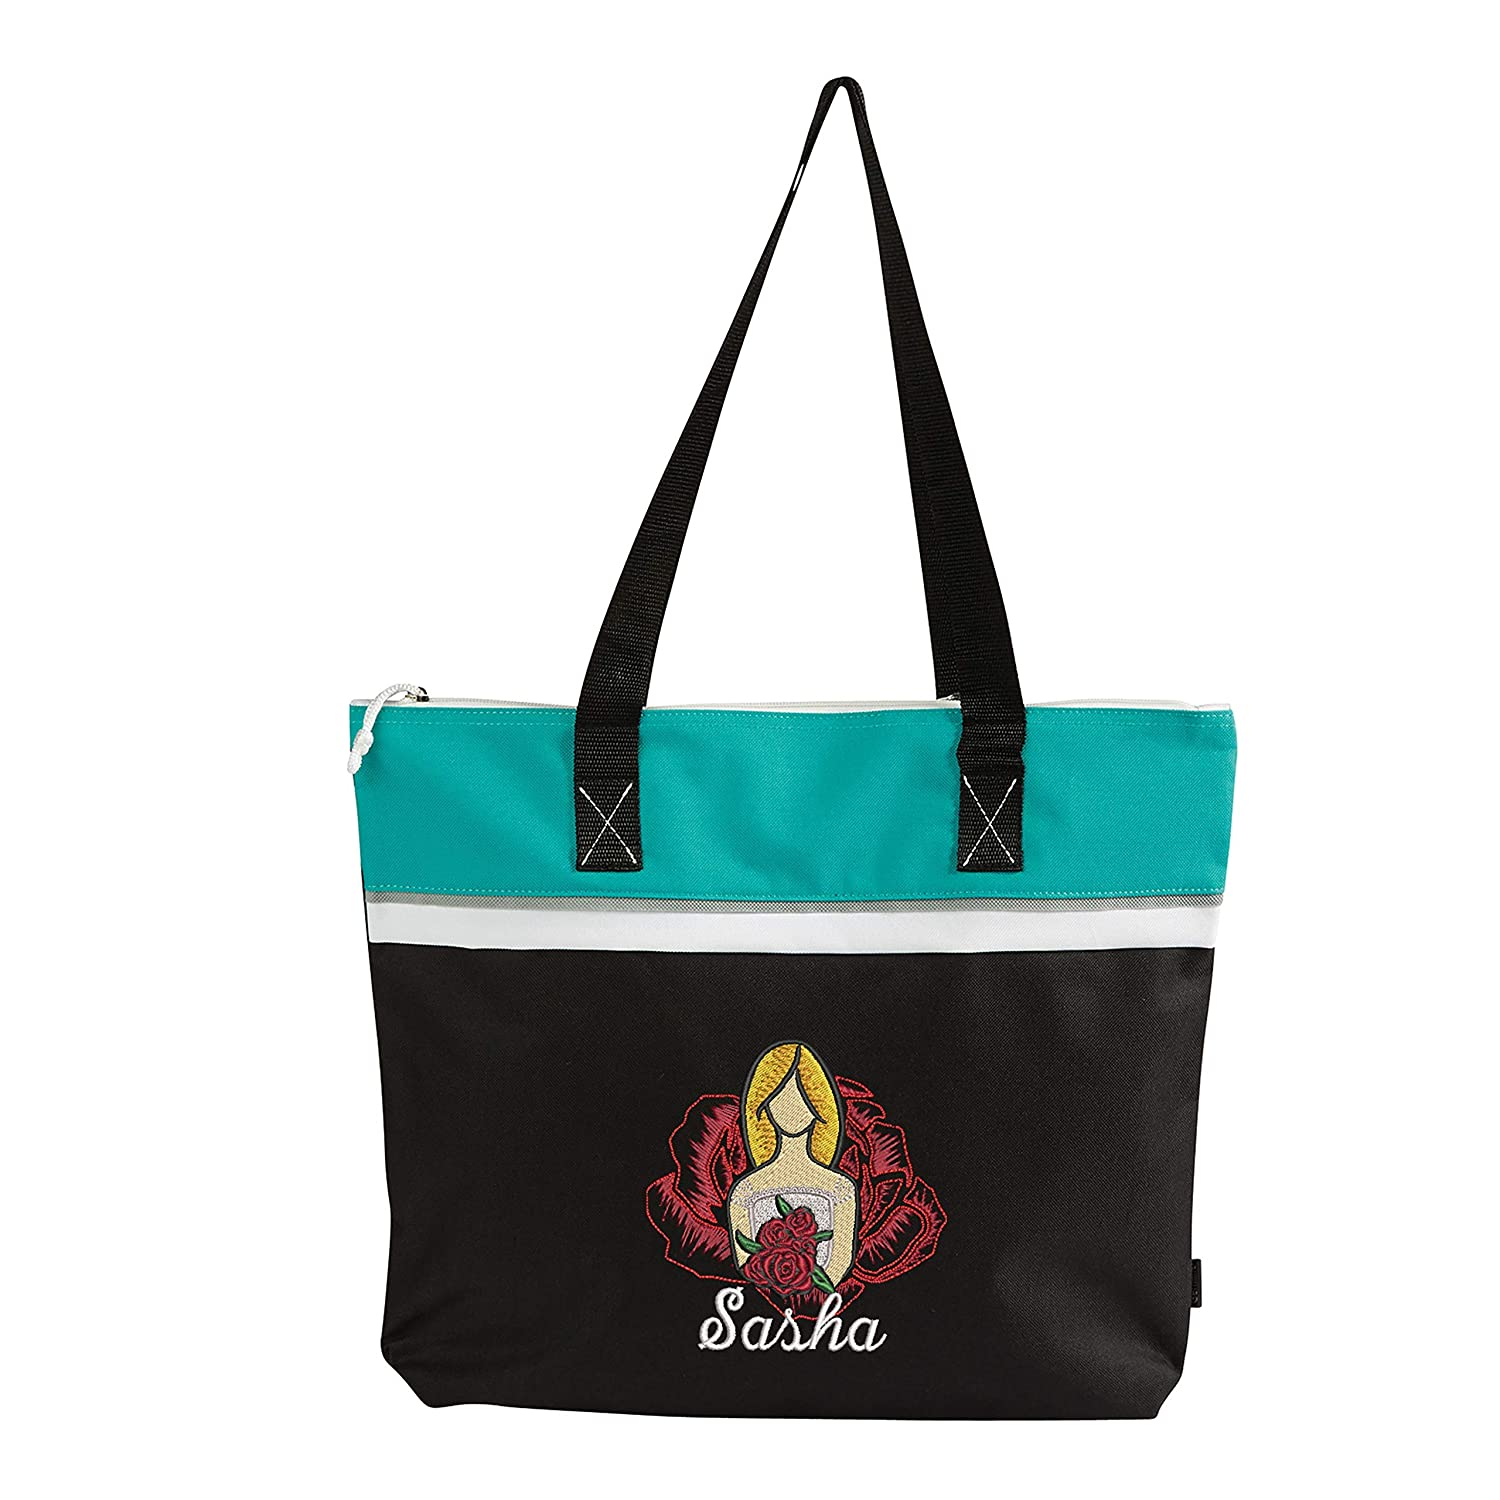 Floral Bride Embroidered Personalized Beach Tote Same Max 56% OFF day shipping Small Travel